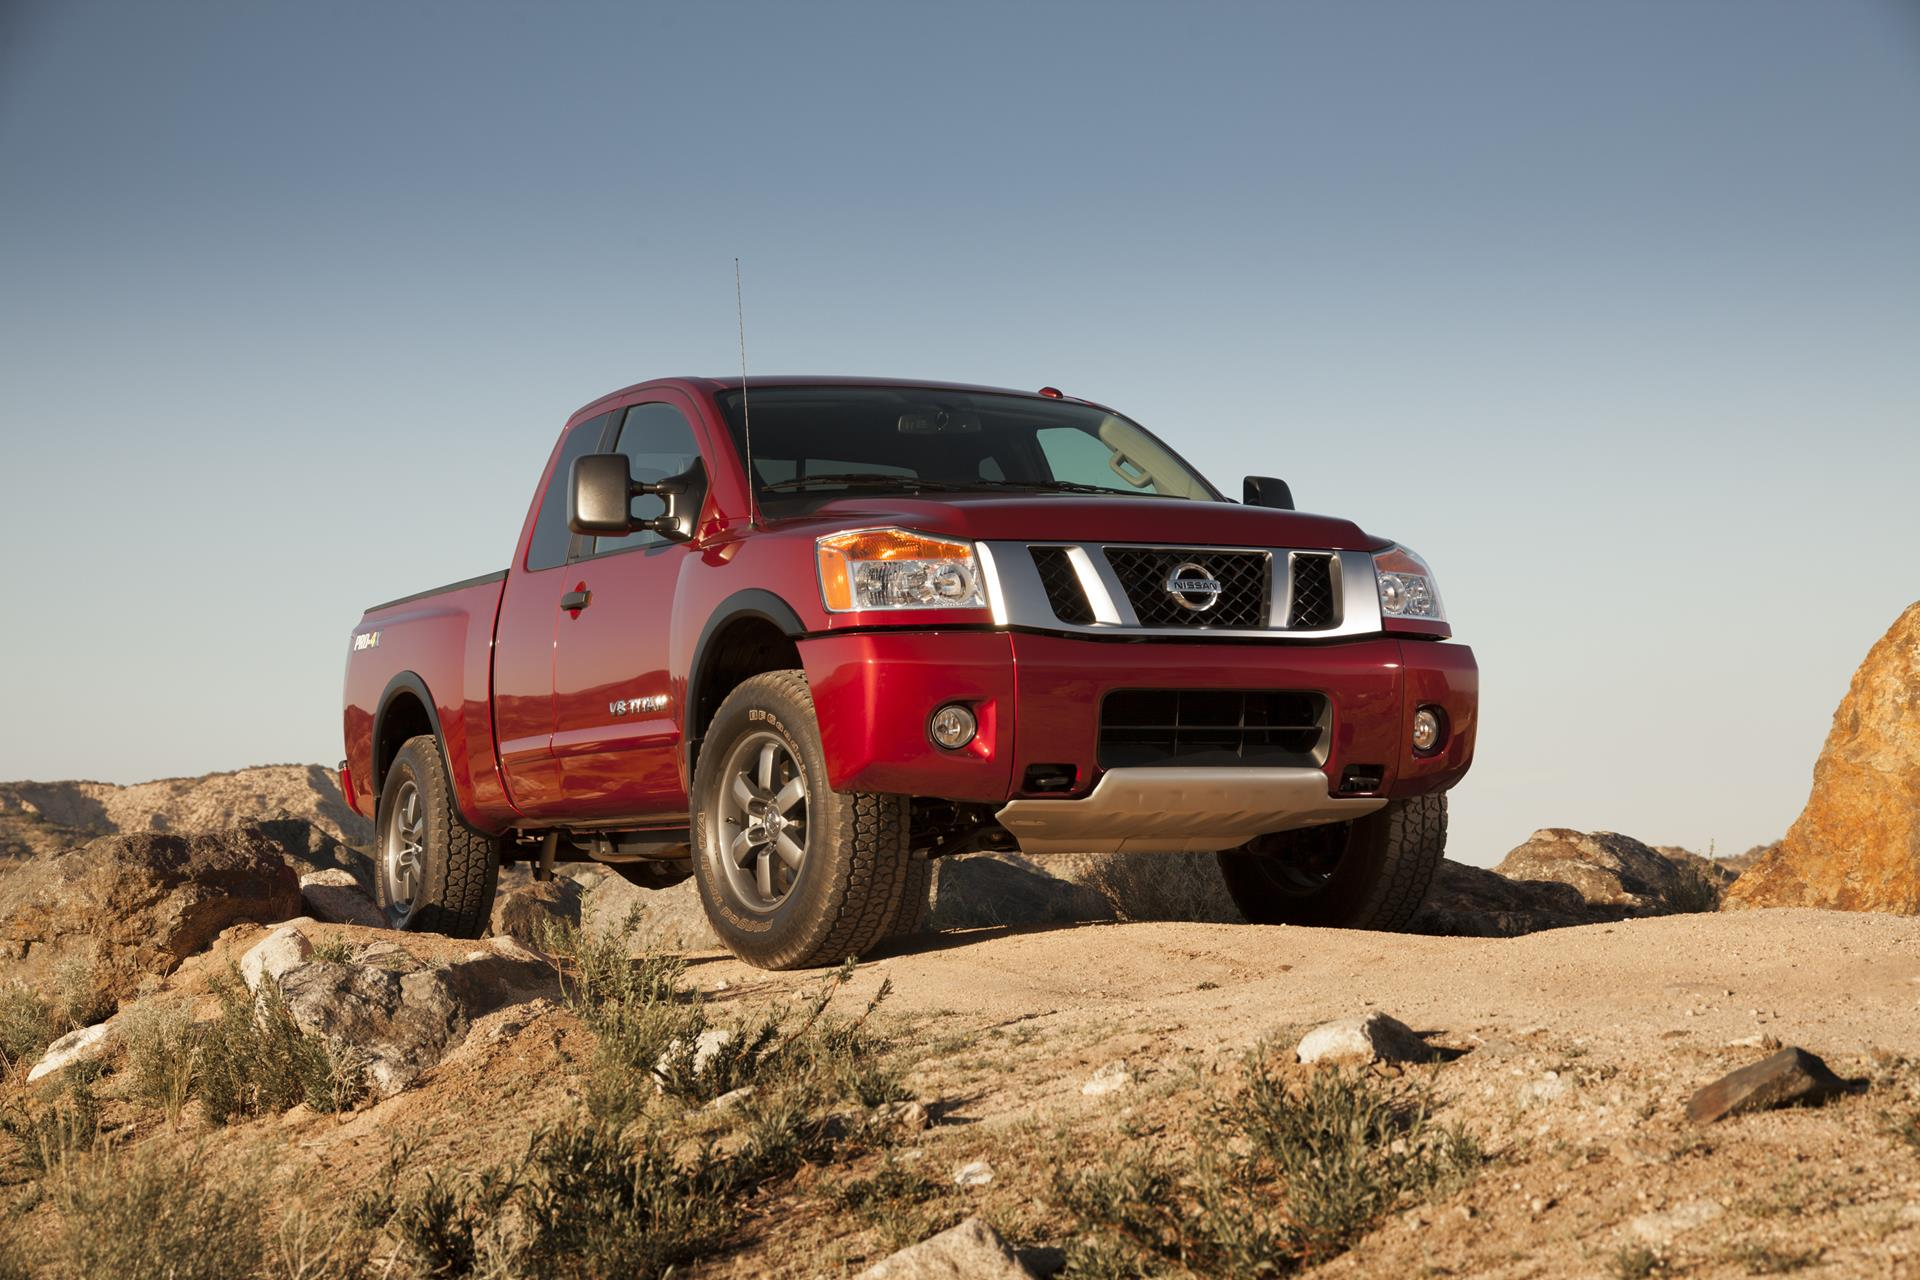 2015 nissan titan. Black Bedroom Furniture Sets. Home Design Ideas